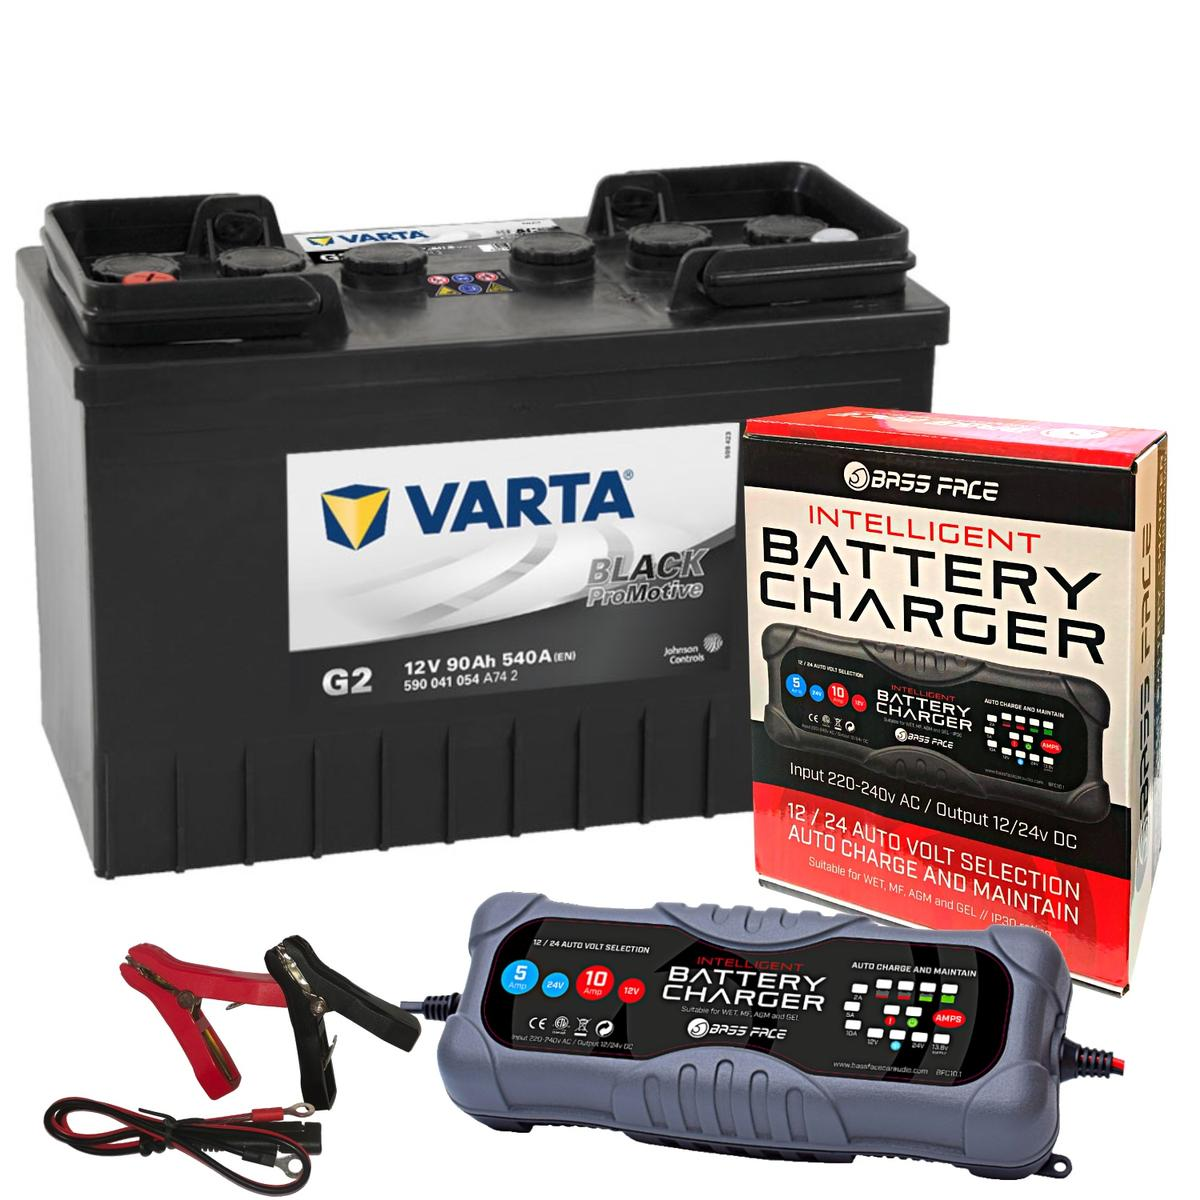 Varta G2 Commerial Battery 12v 2 Year 644/646 90Ah 540CCA W/ 10 Amp Charger